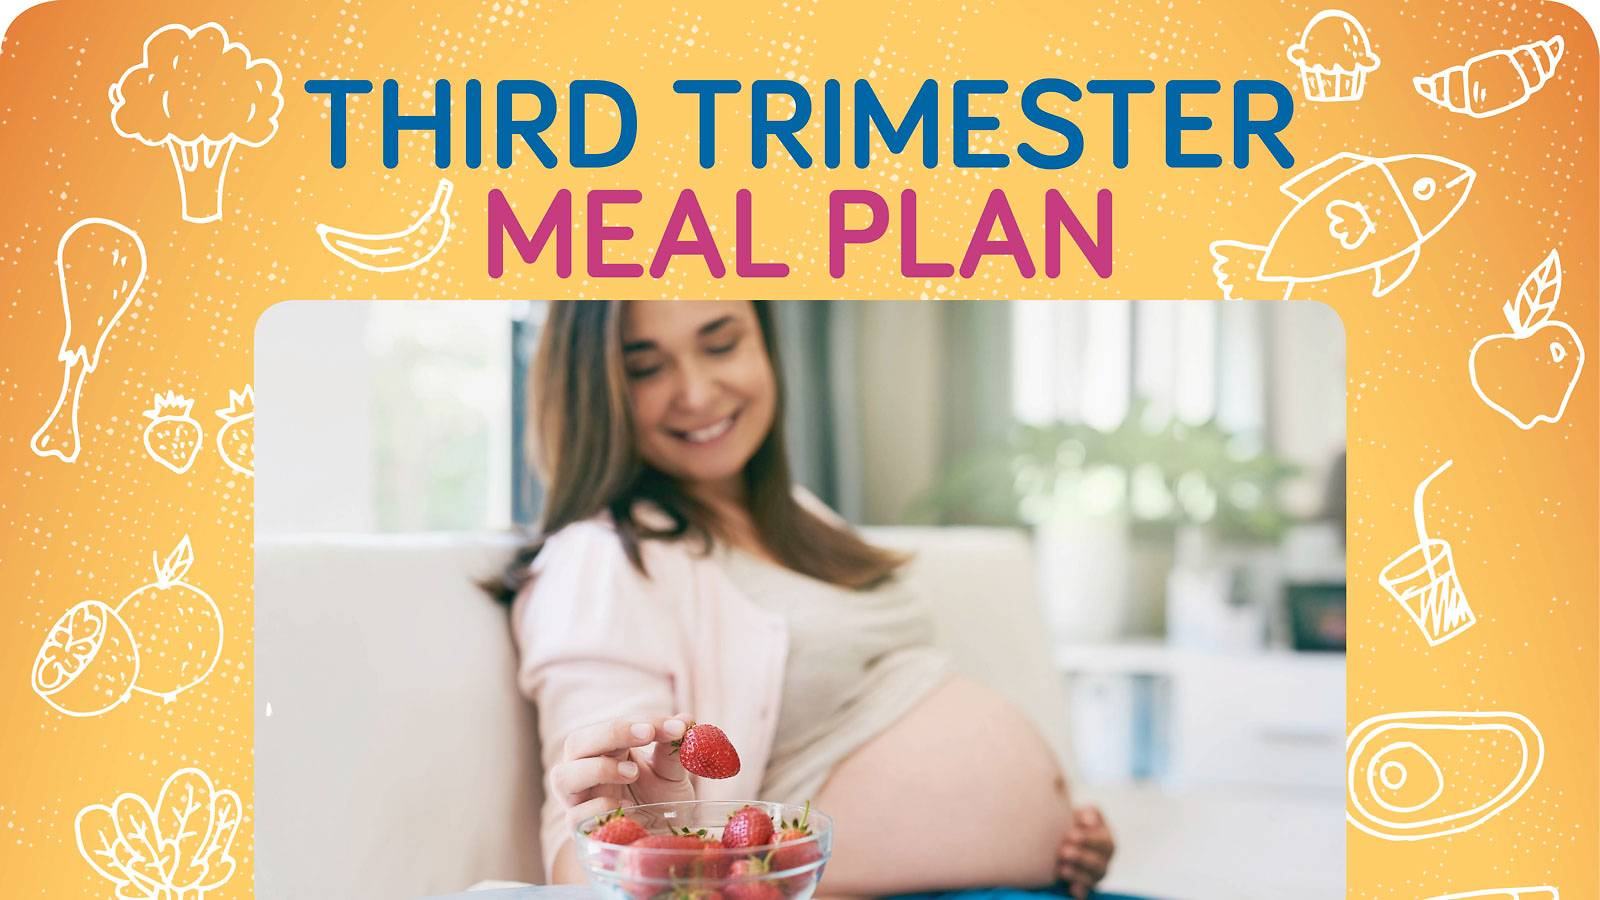 Pregnancy-diet-meal-plan-Third-trimester-1